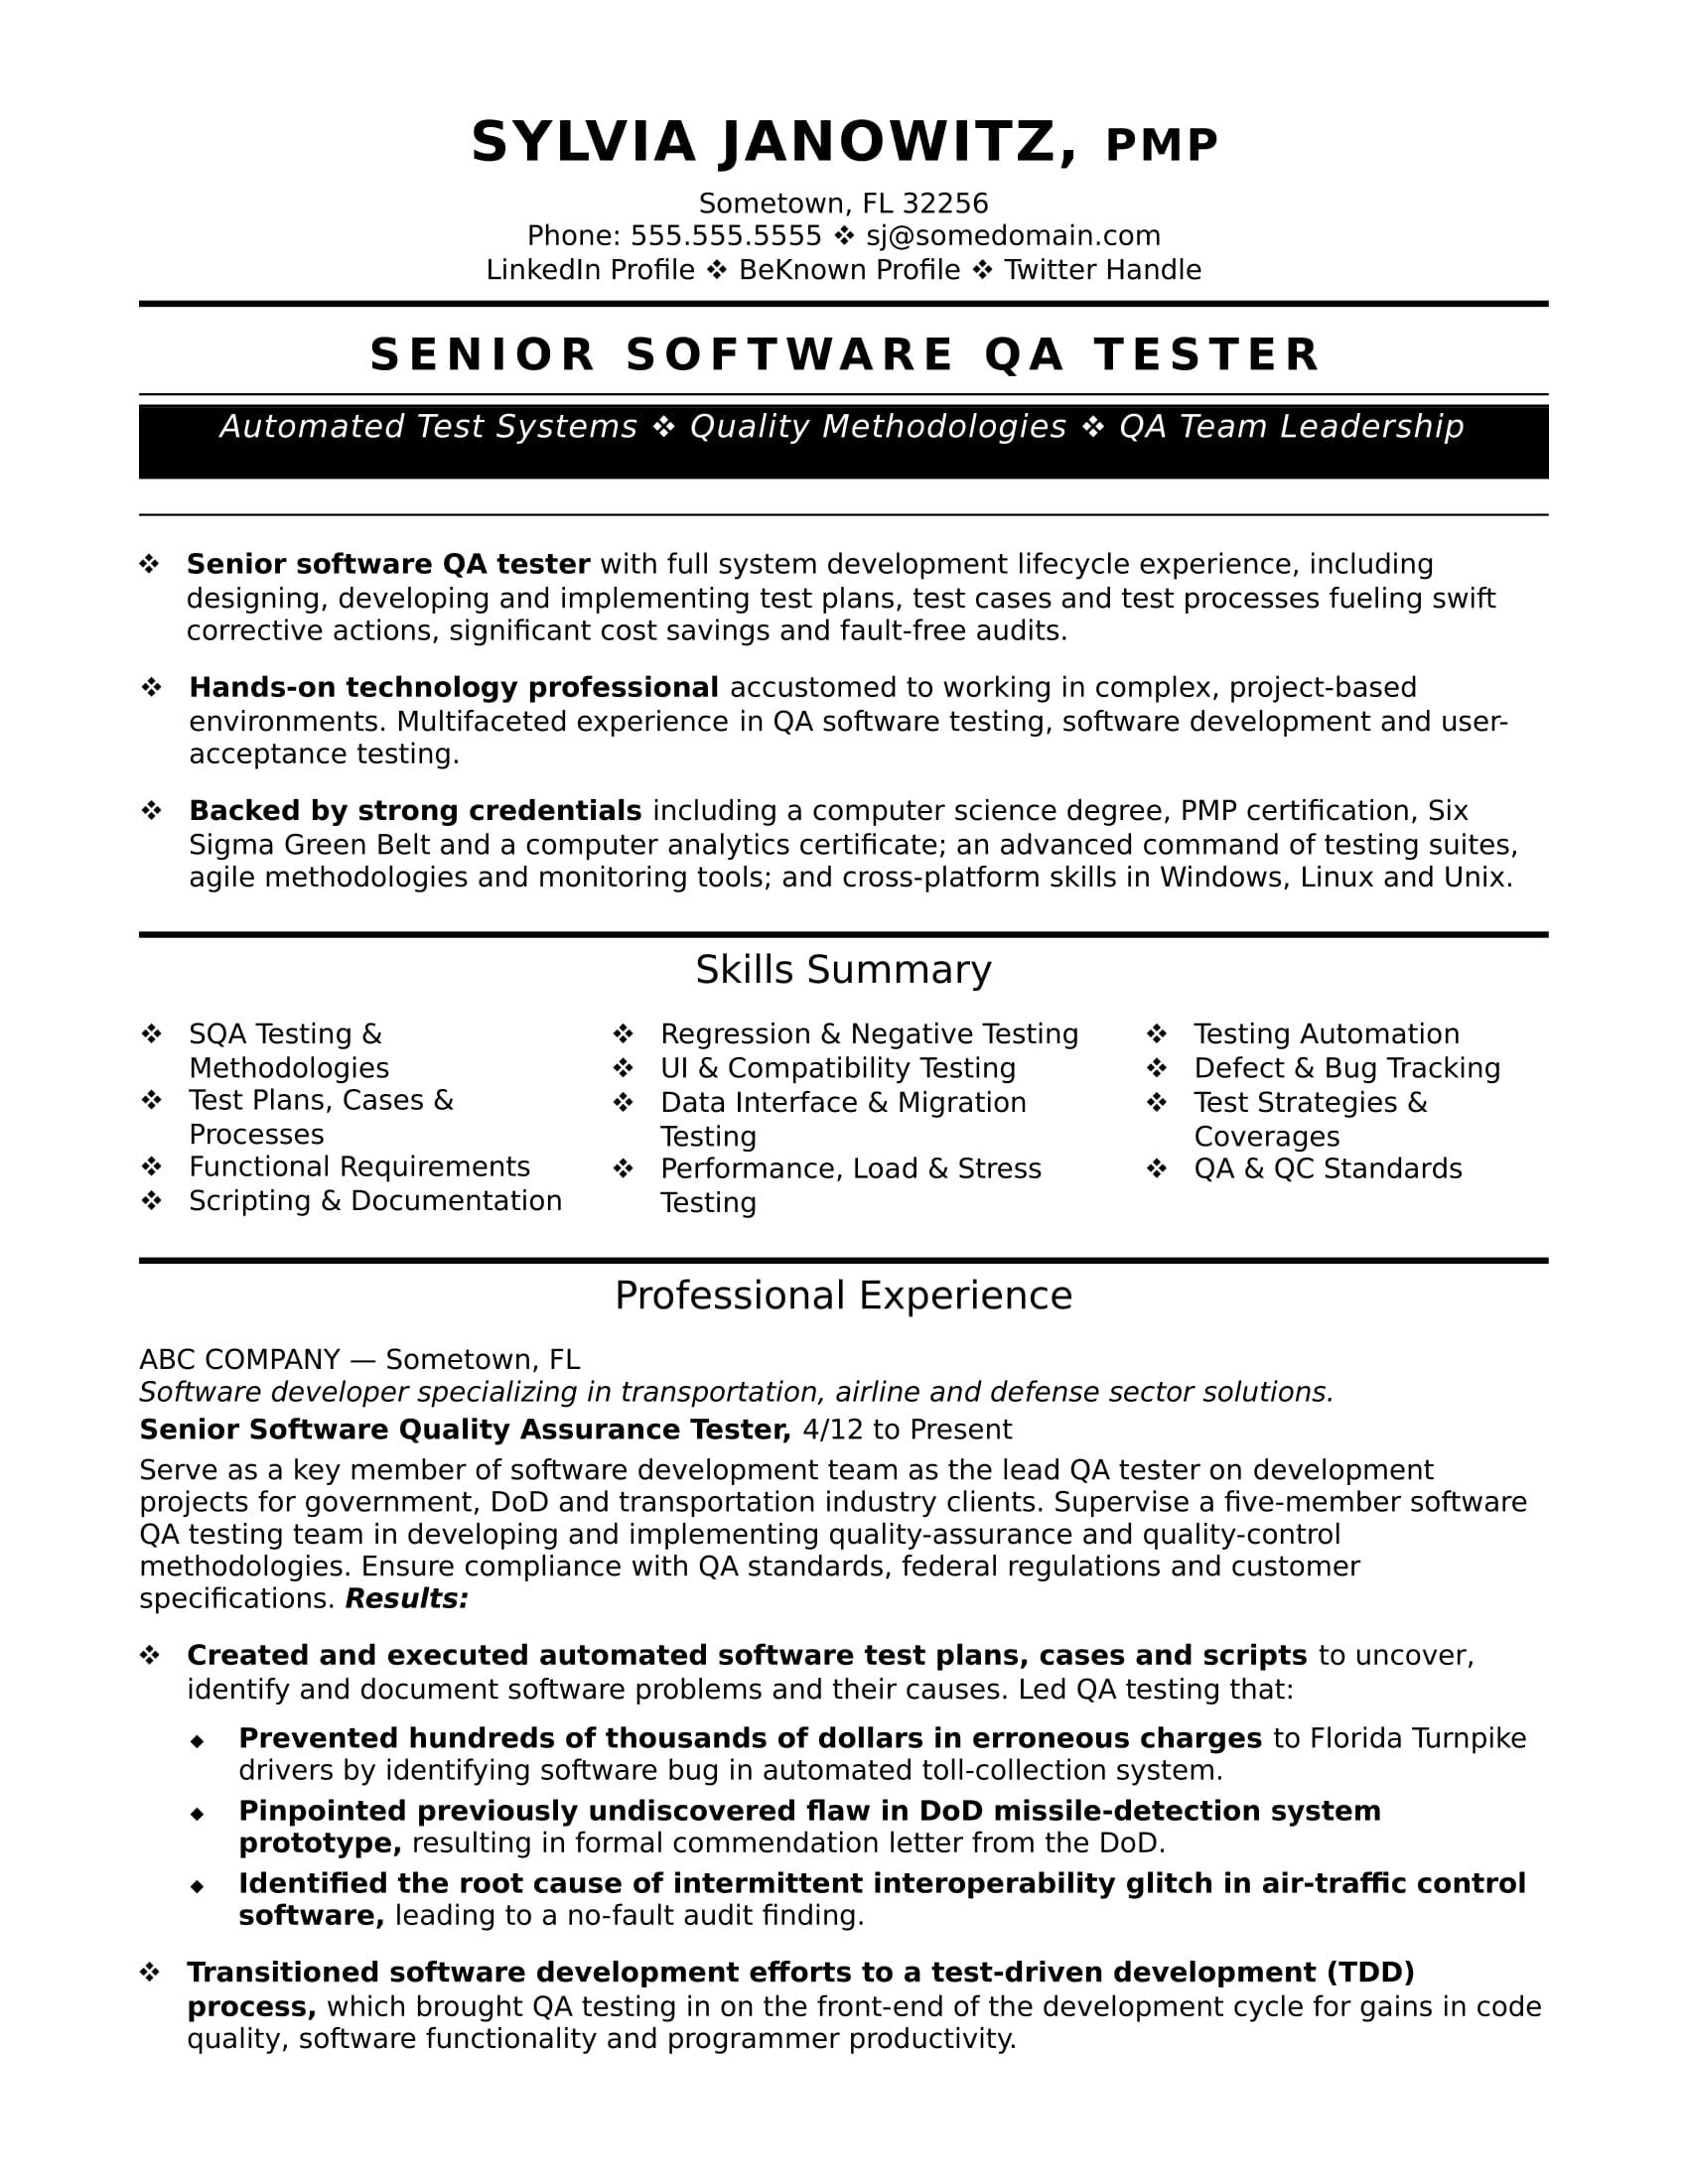 55 Awesome Automation Engineer Resume with Images